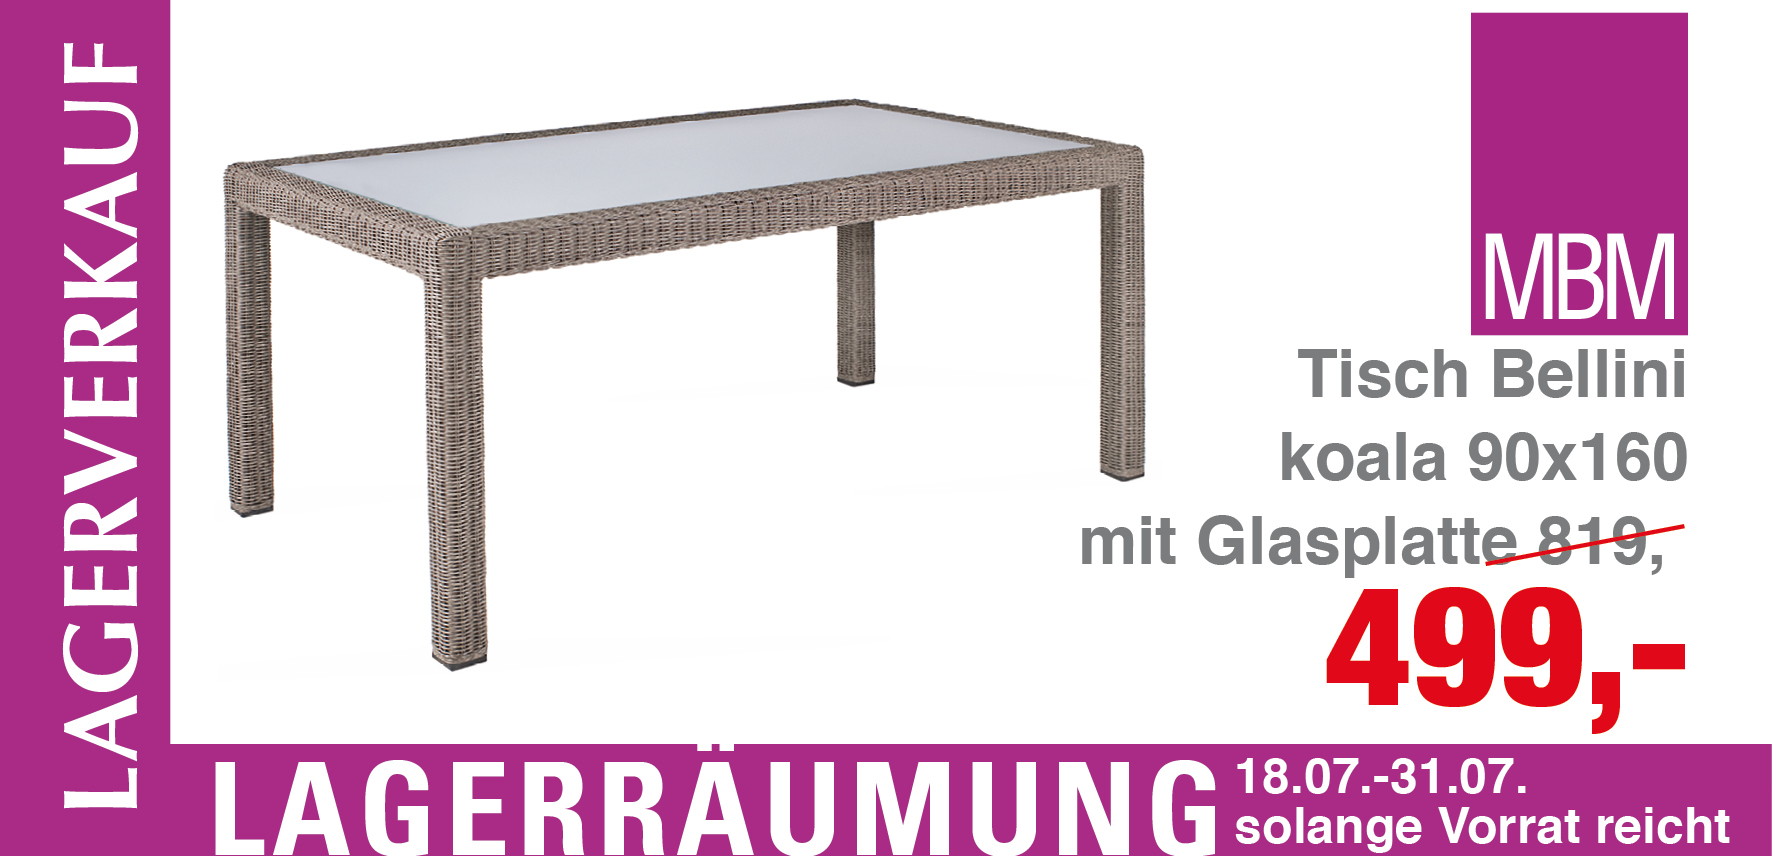 gartentisch rund metall mbm. Black Bedroom Furniture Sets. Home Design Ideas